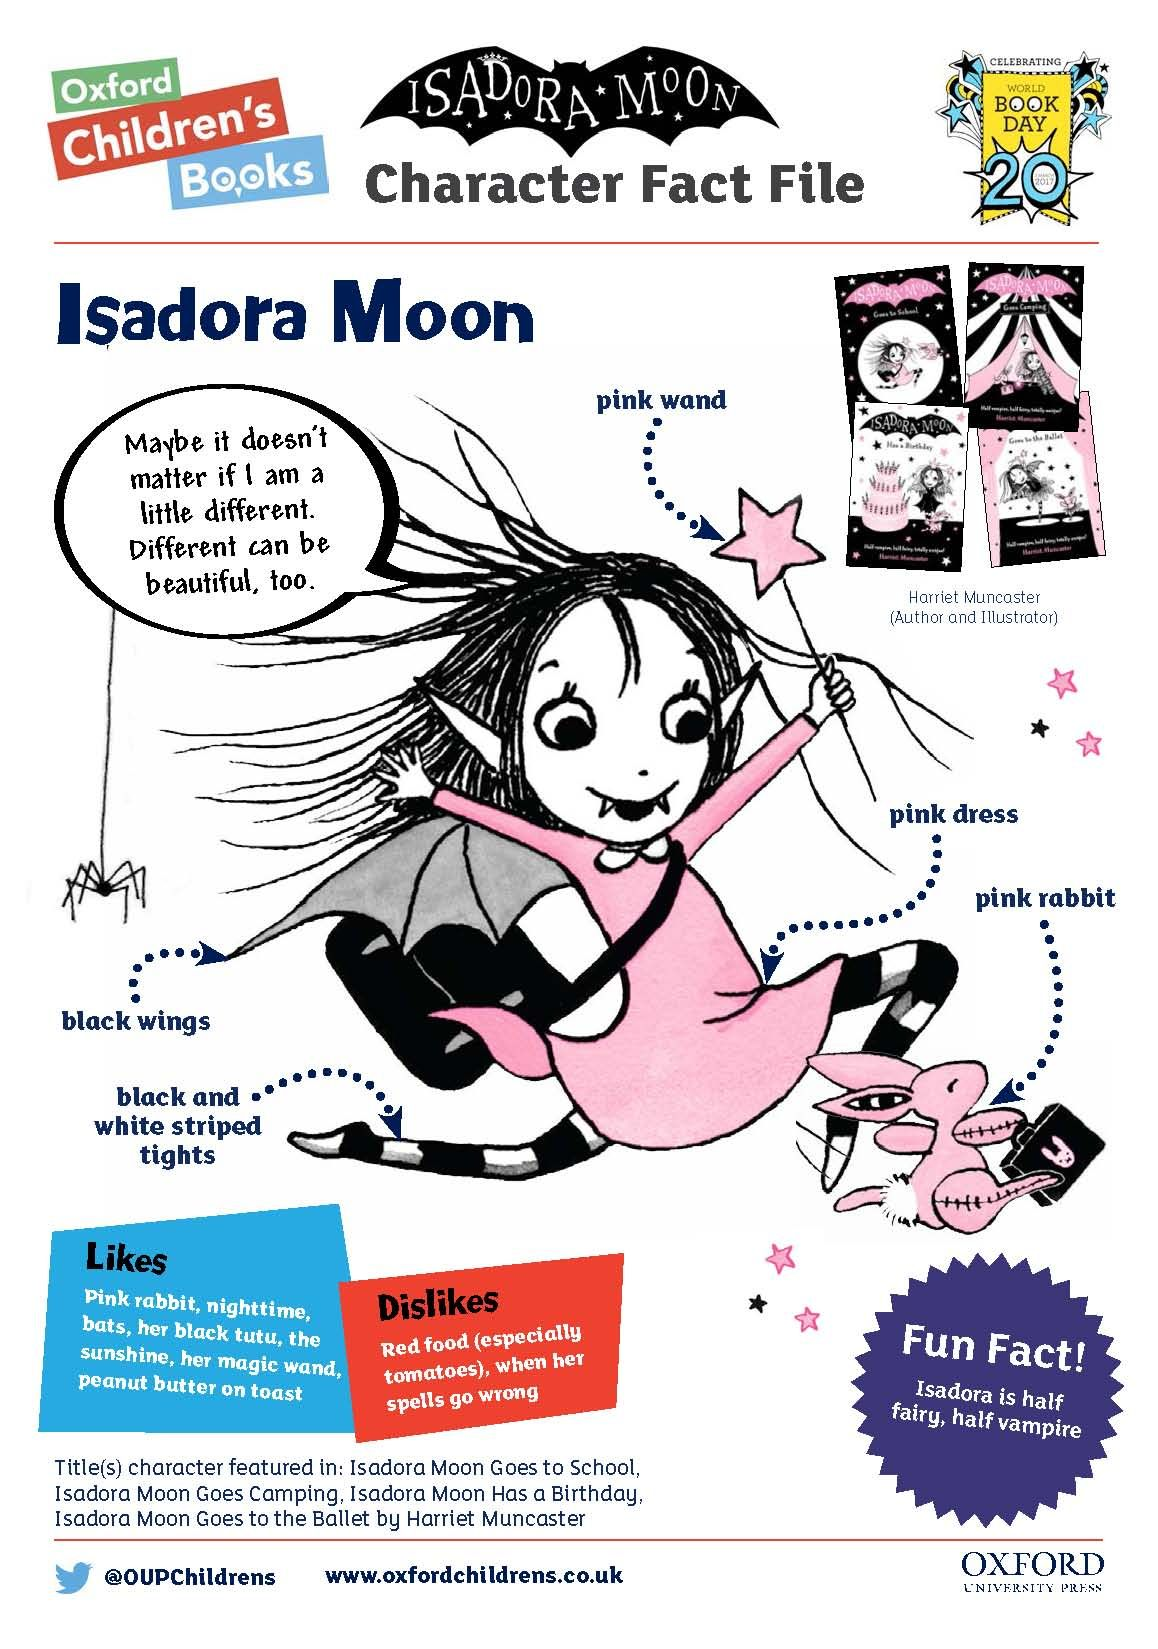 All the information you need to dress up as Isadora Moon for World Book Day!